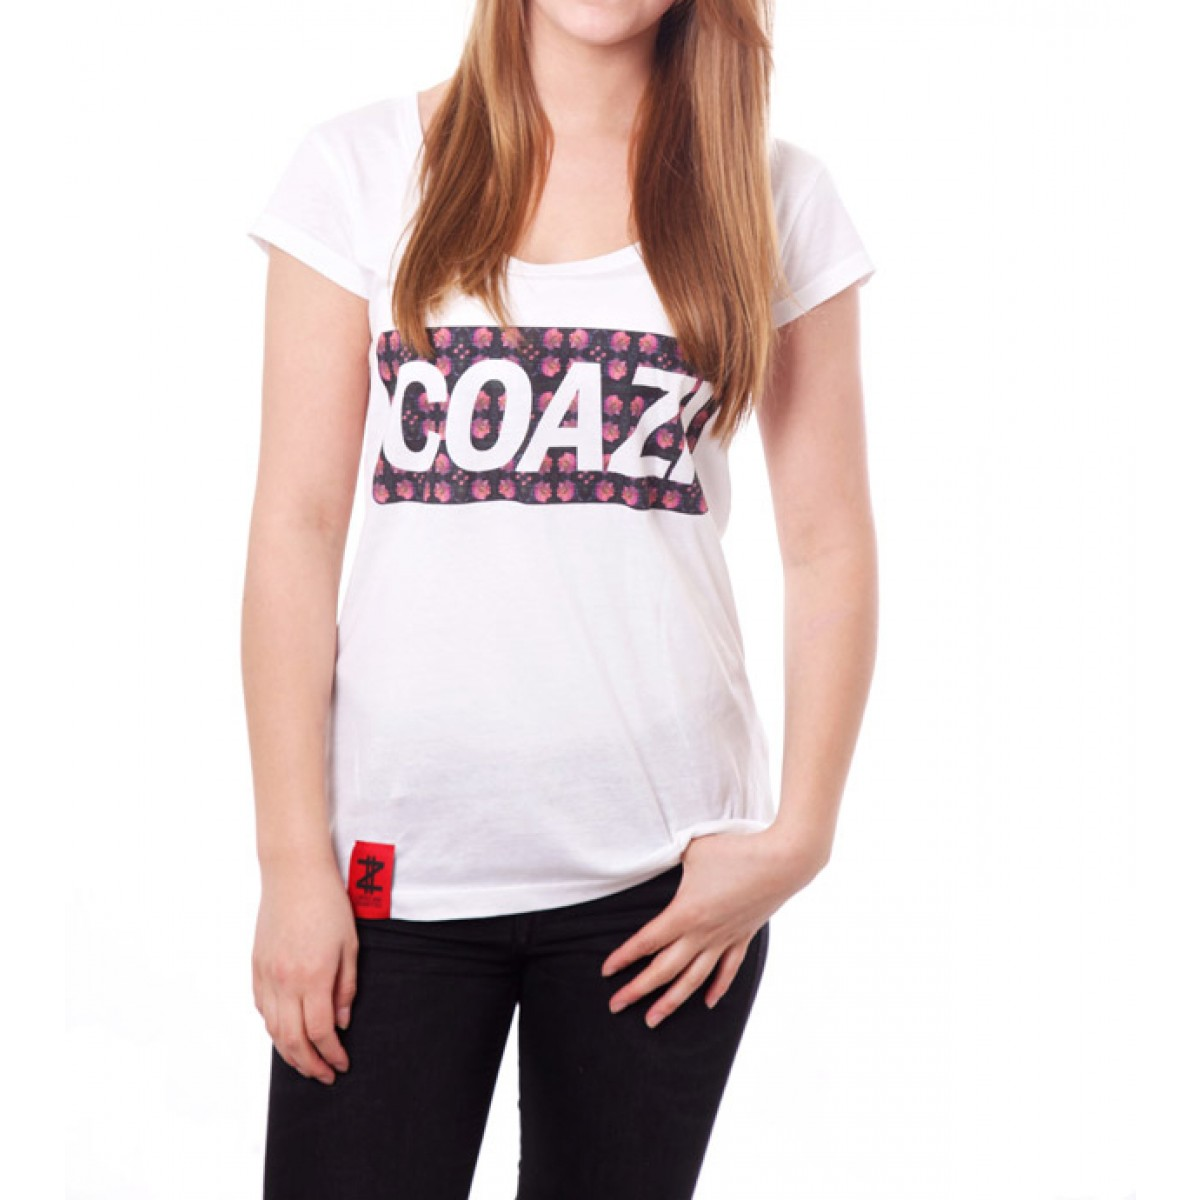 Coazi Floral Wide T-Shirt Female